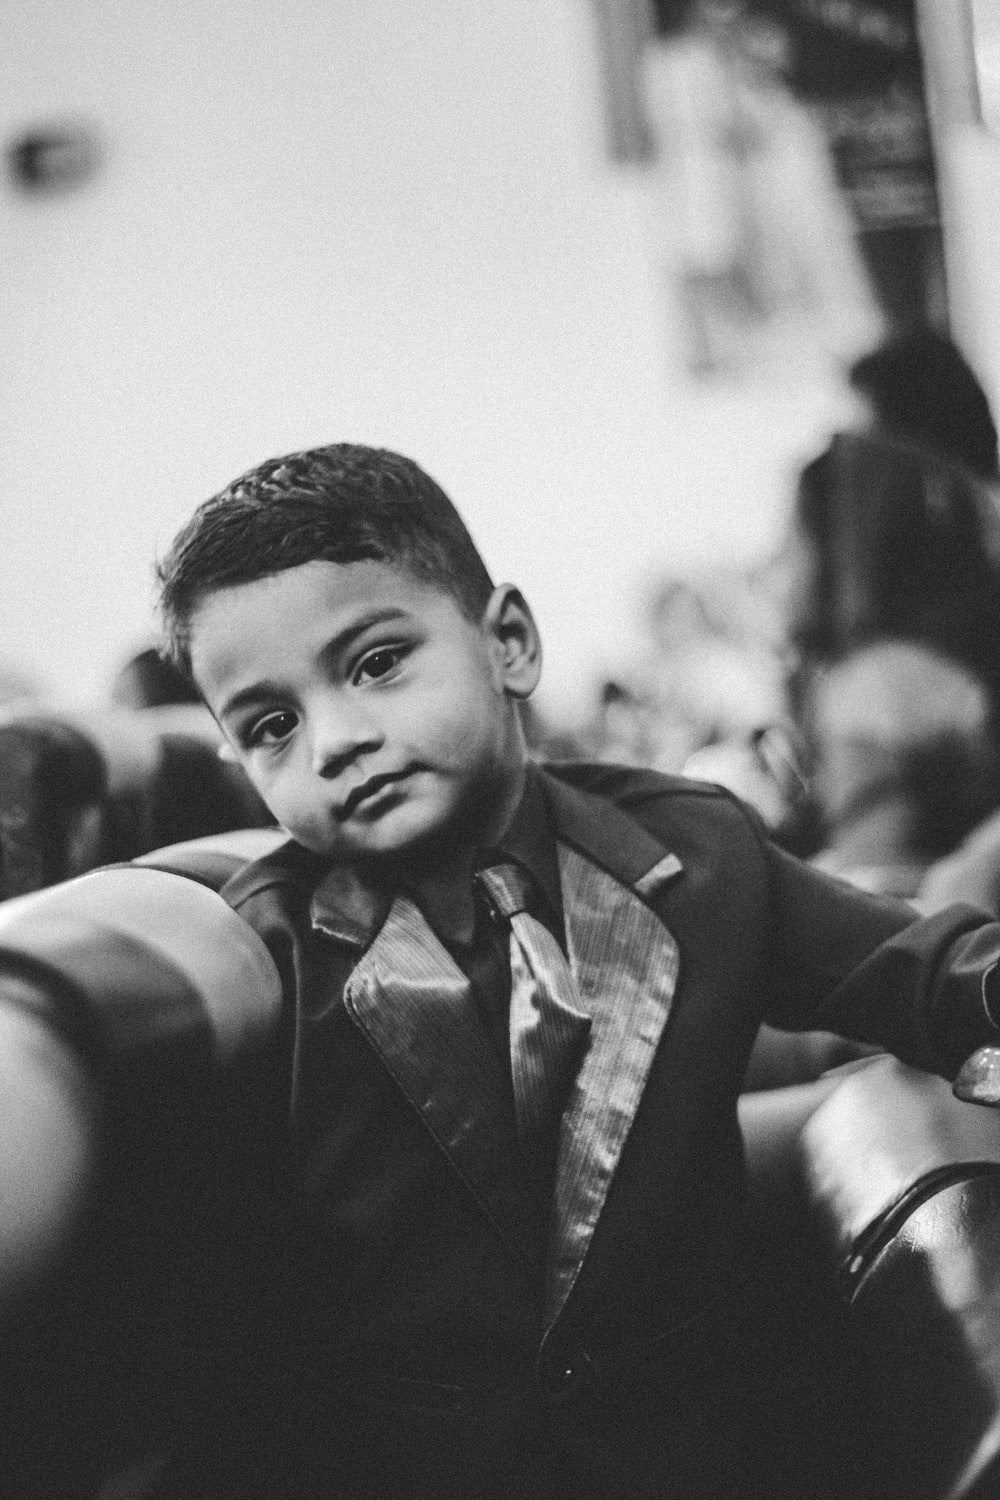 grayscale photography of smiling boy in formal suit jacket